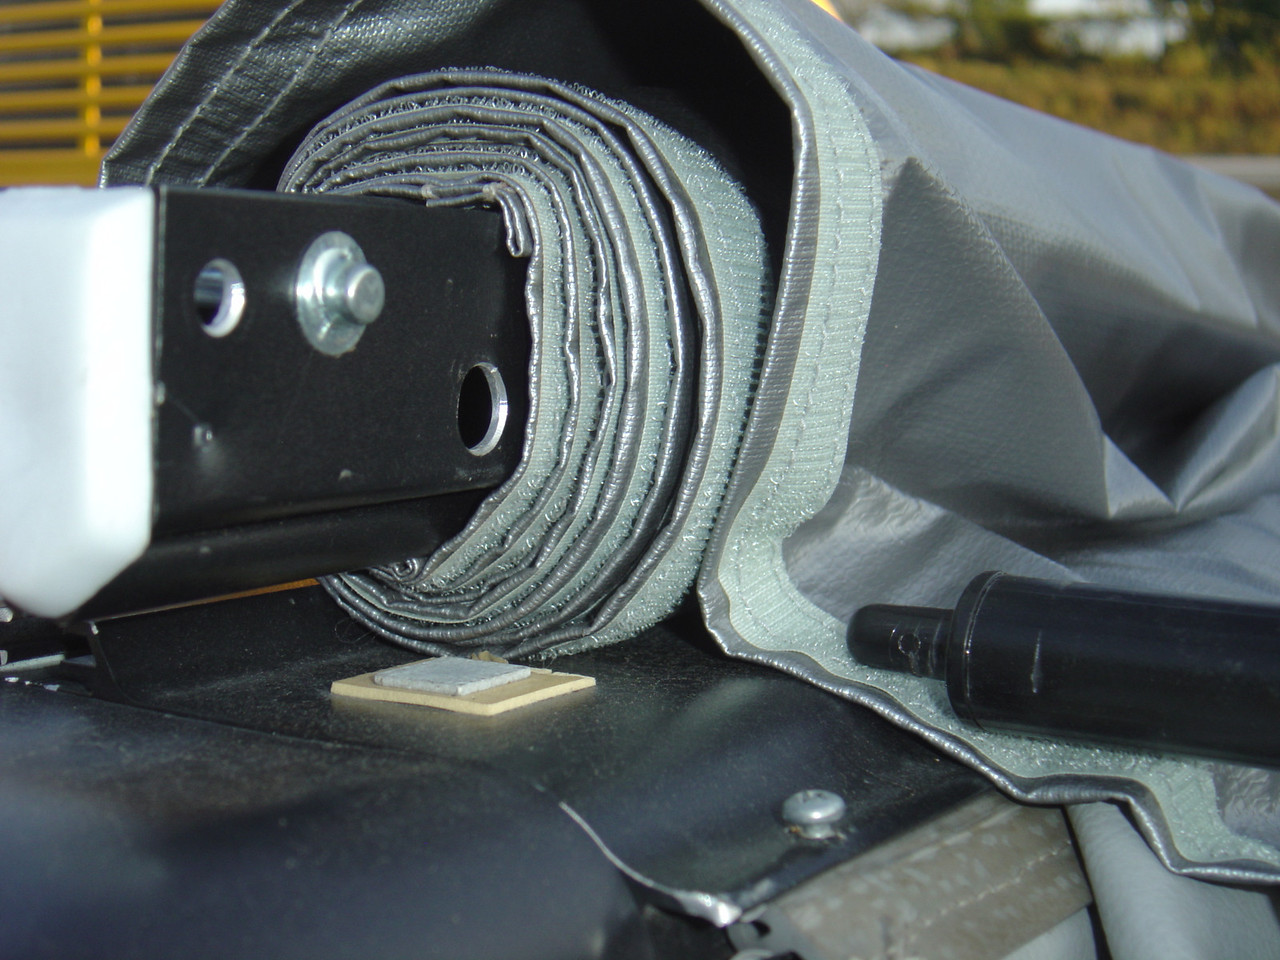 Roll up the awning.  Once you have it rolled up and into the bag you can move to the end of the bag and start zipping it close.(please ignore the awning pole in this photograph.  It was take to explain how the tip fits into channel.)